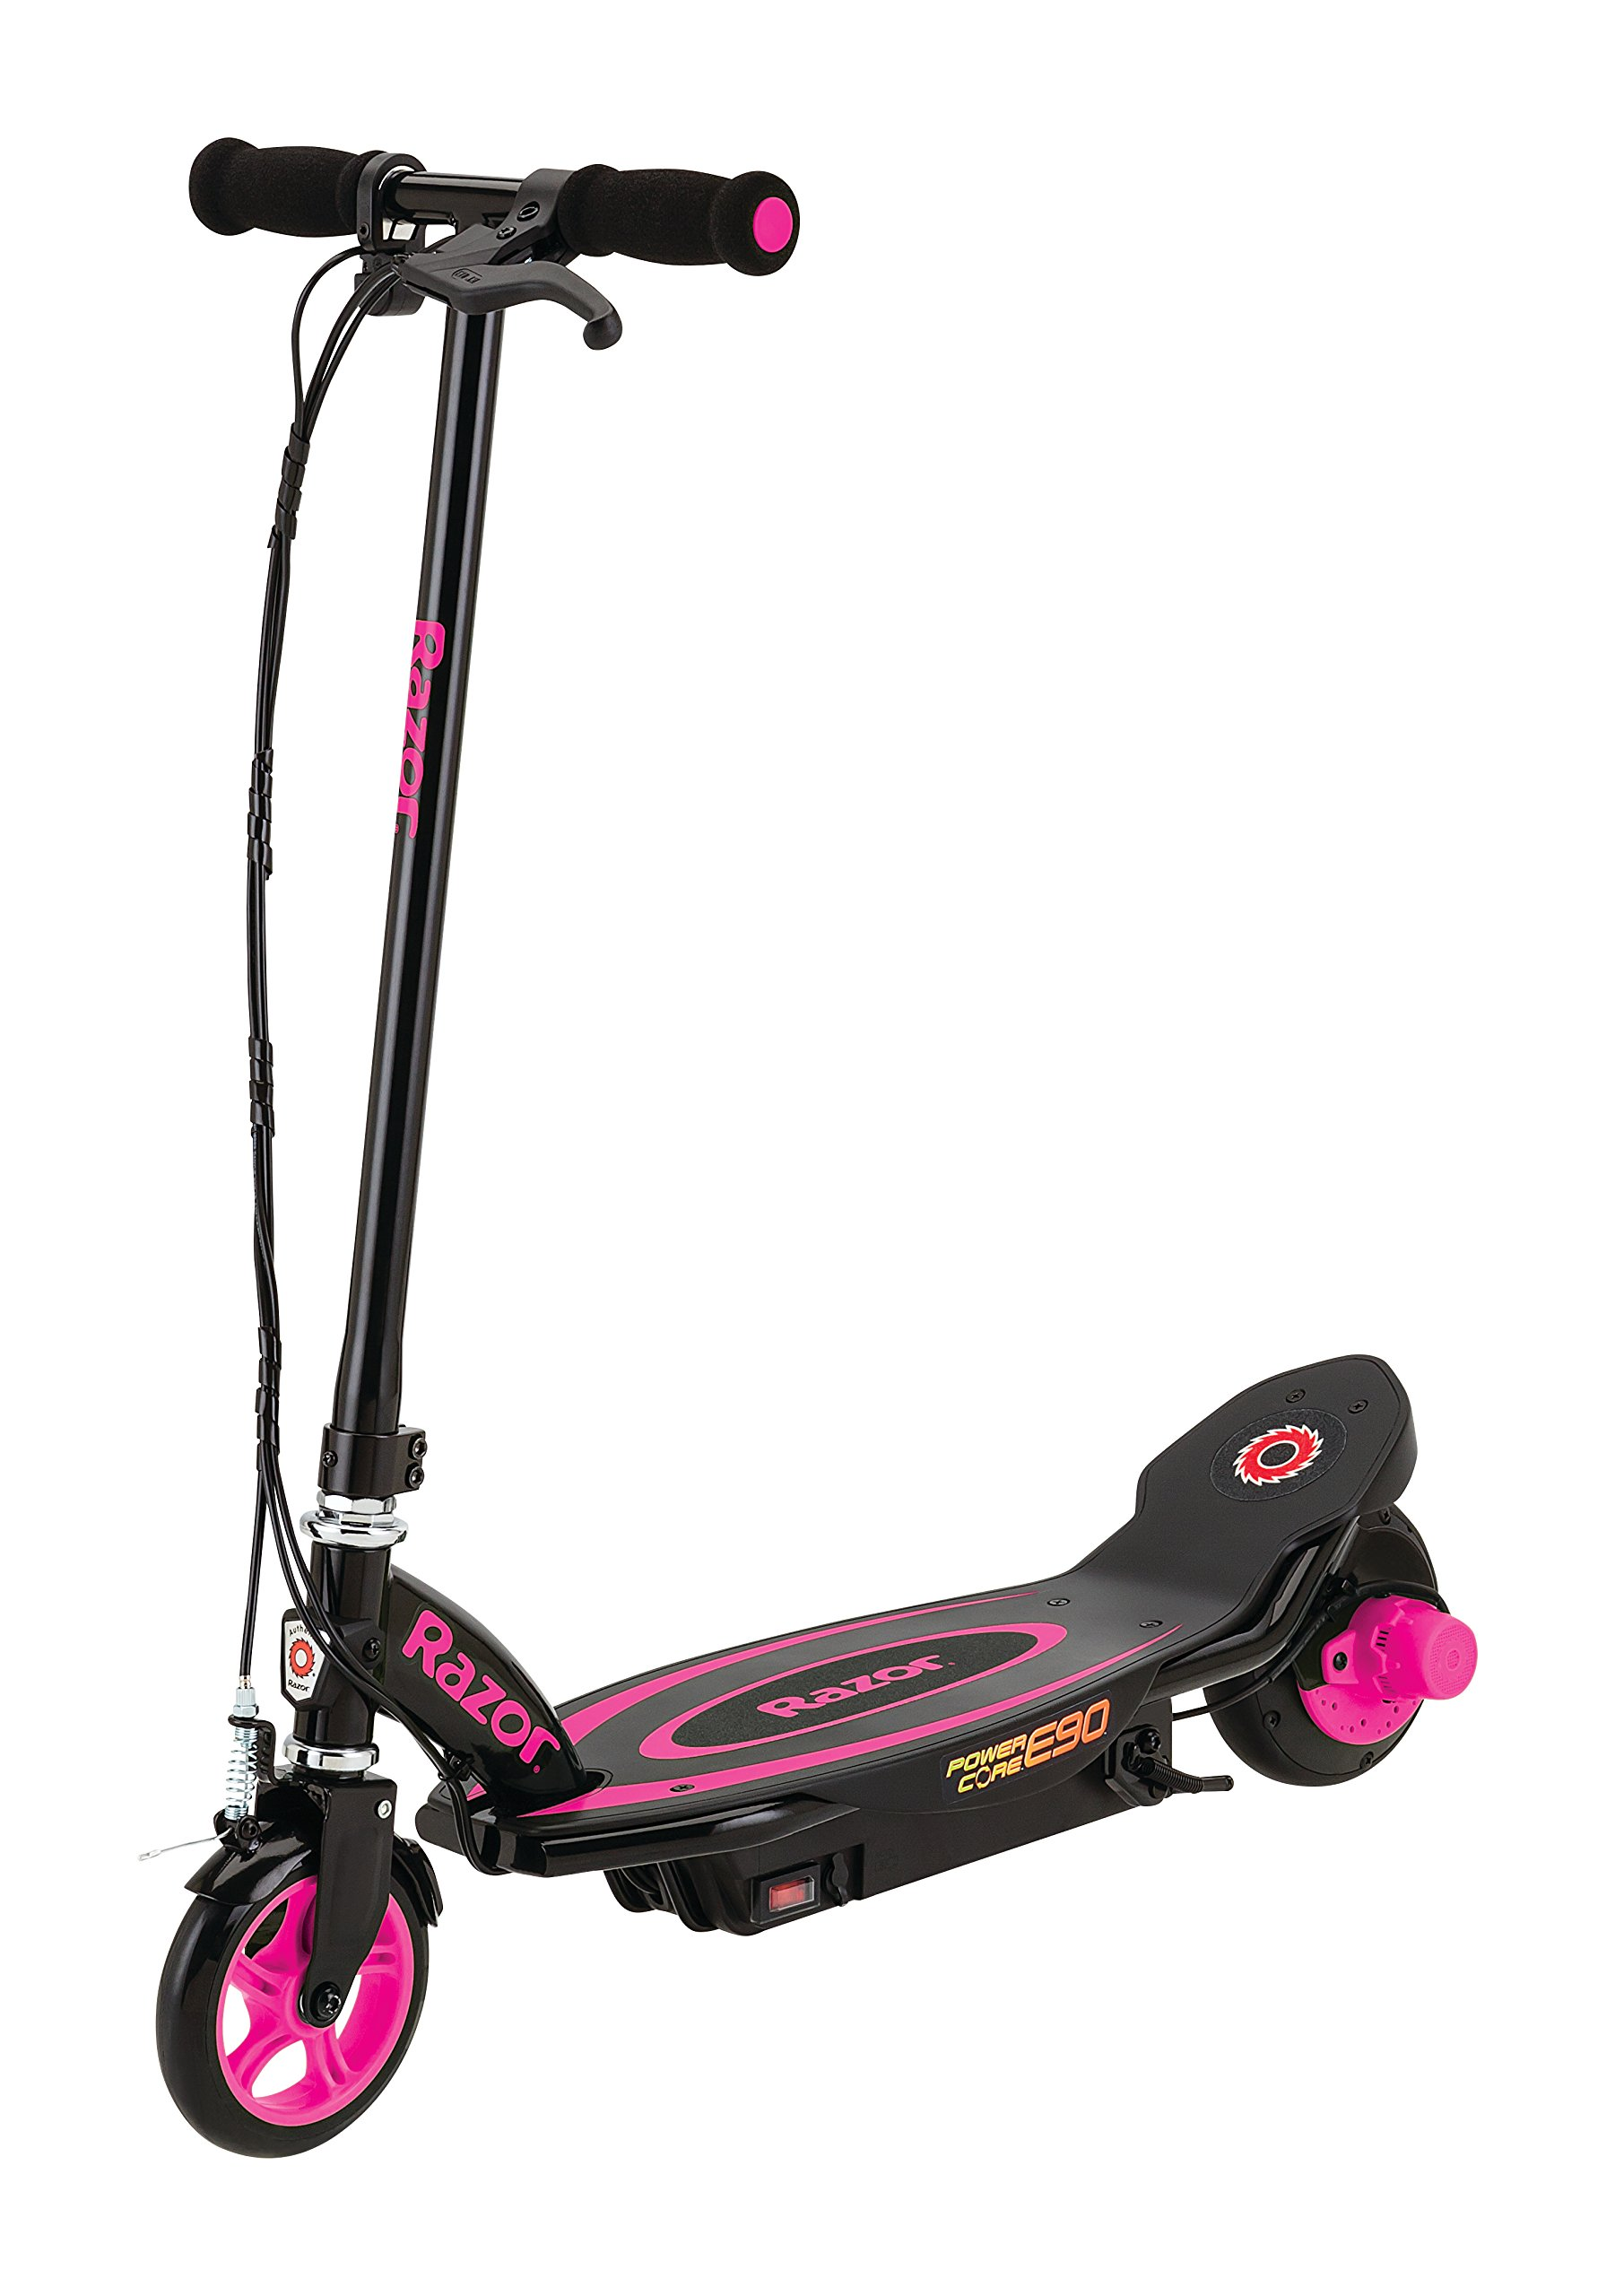 Razor 13111463 Power Core E90 Electric Scooter, Pink by Razor